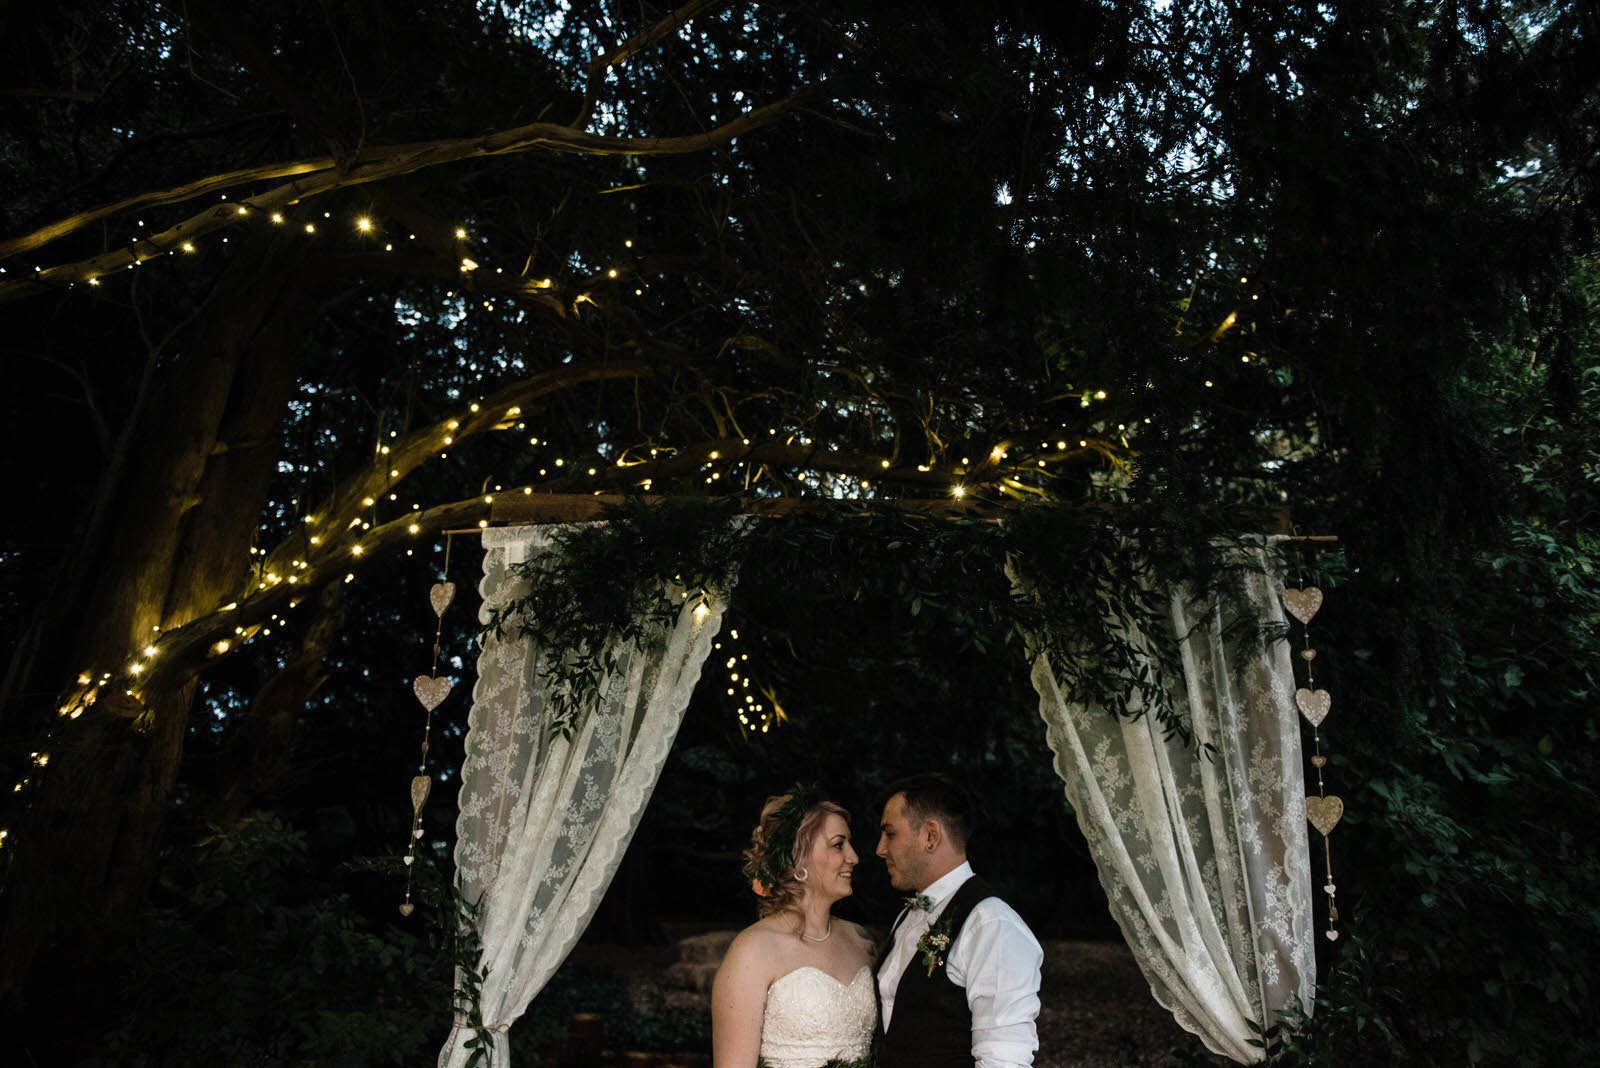 Bride and groom outside under twinkly lights in a wooded area of Hirst Priory